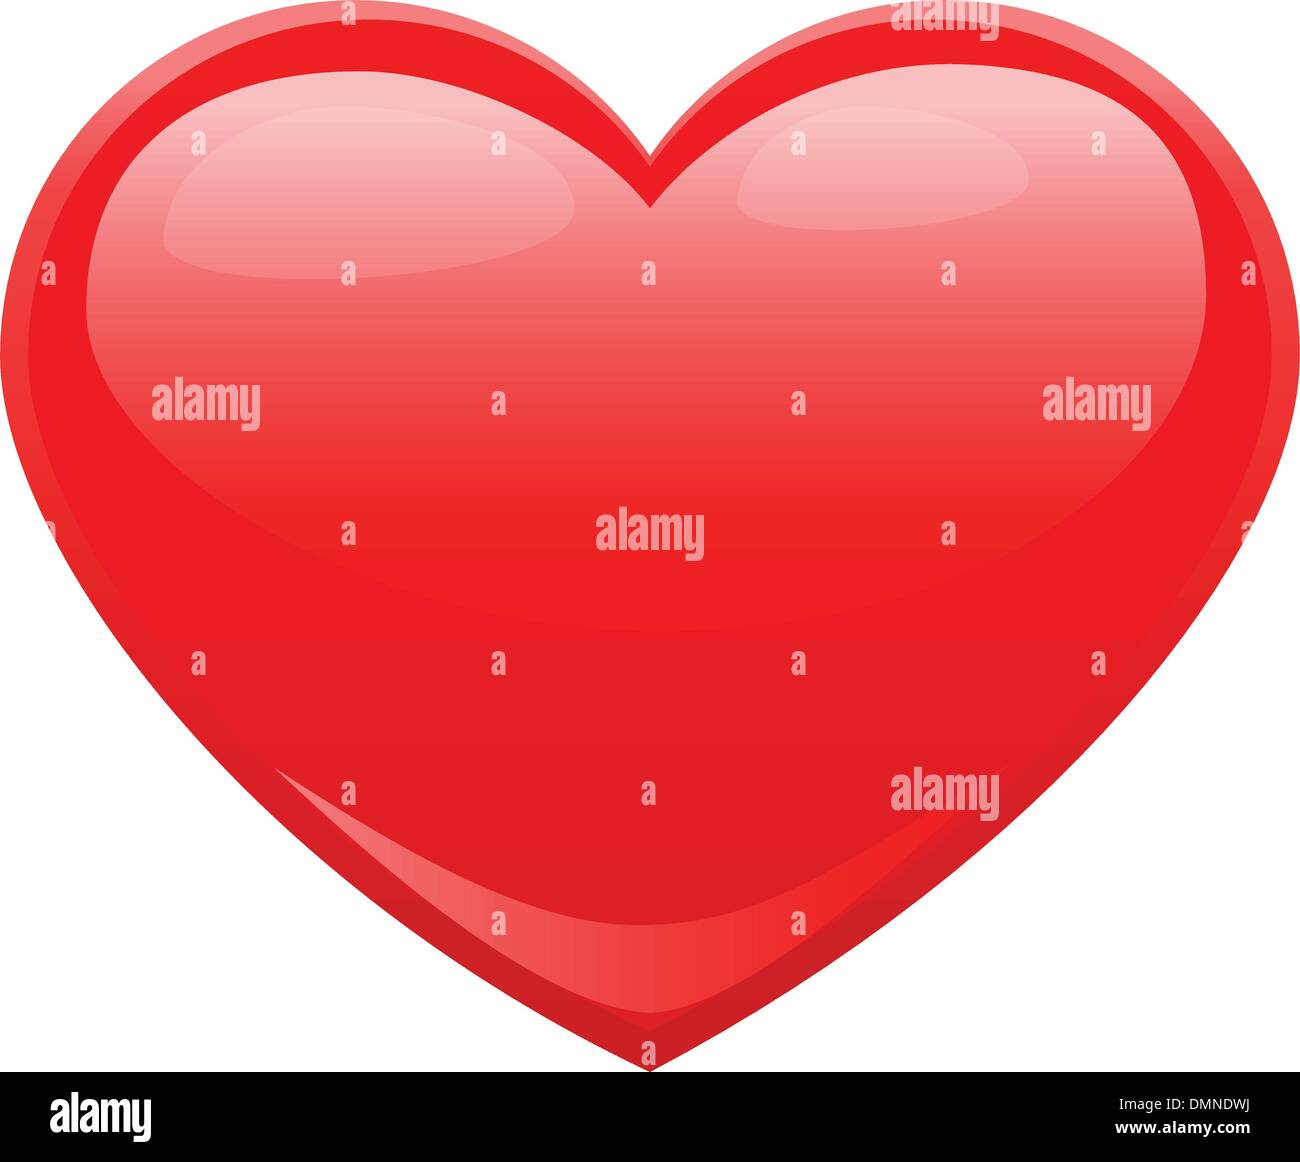 heart shape for love symbols - Stock Image